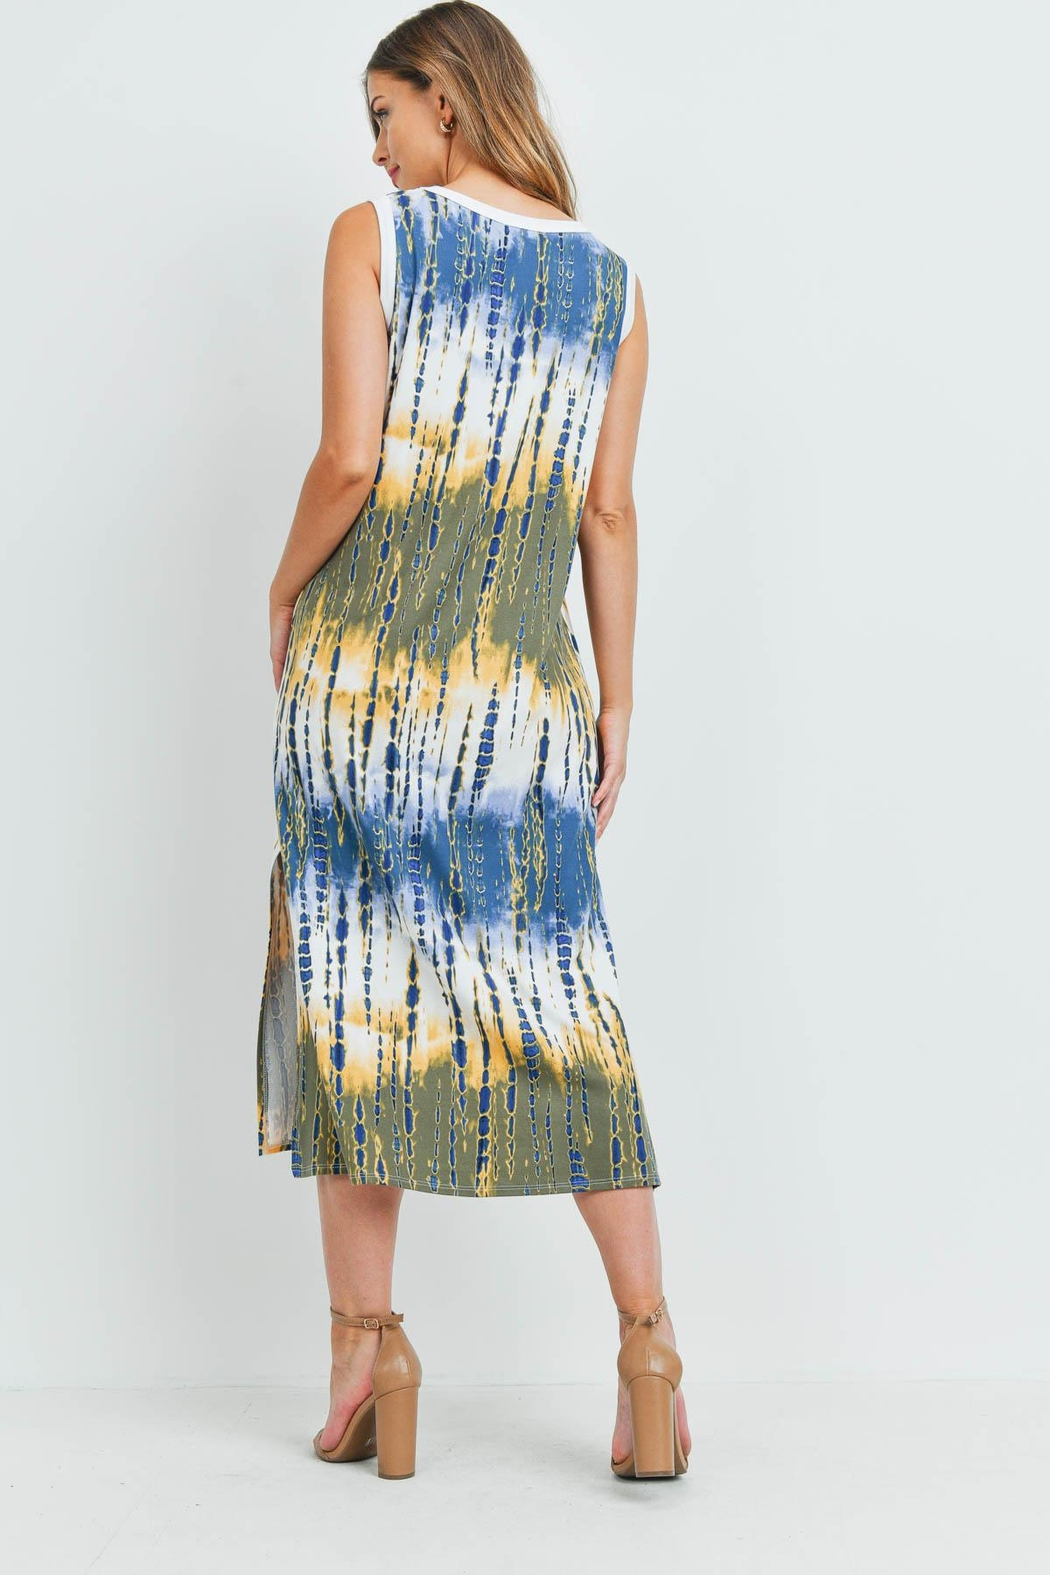 Riah Fashion Tie-Dye-Tank-Dress-With-Side-Slit - Front Full Image